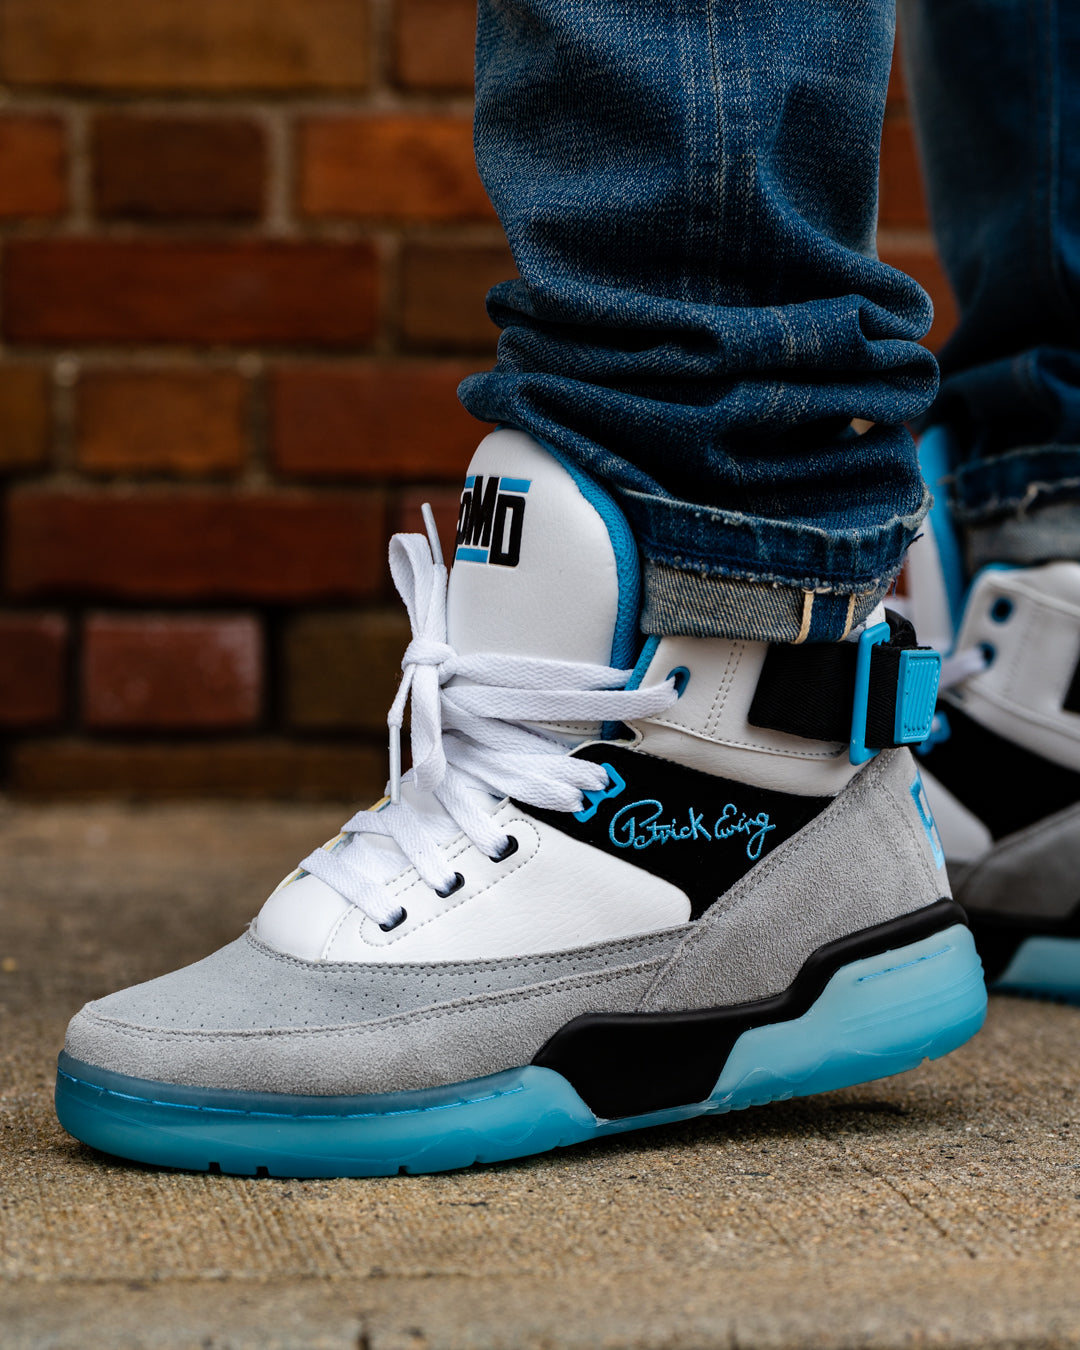 Ewing 33 Hi Unfinished Business EPMD lateral